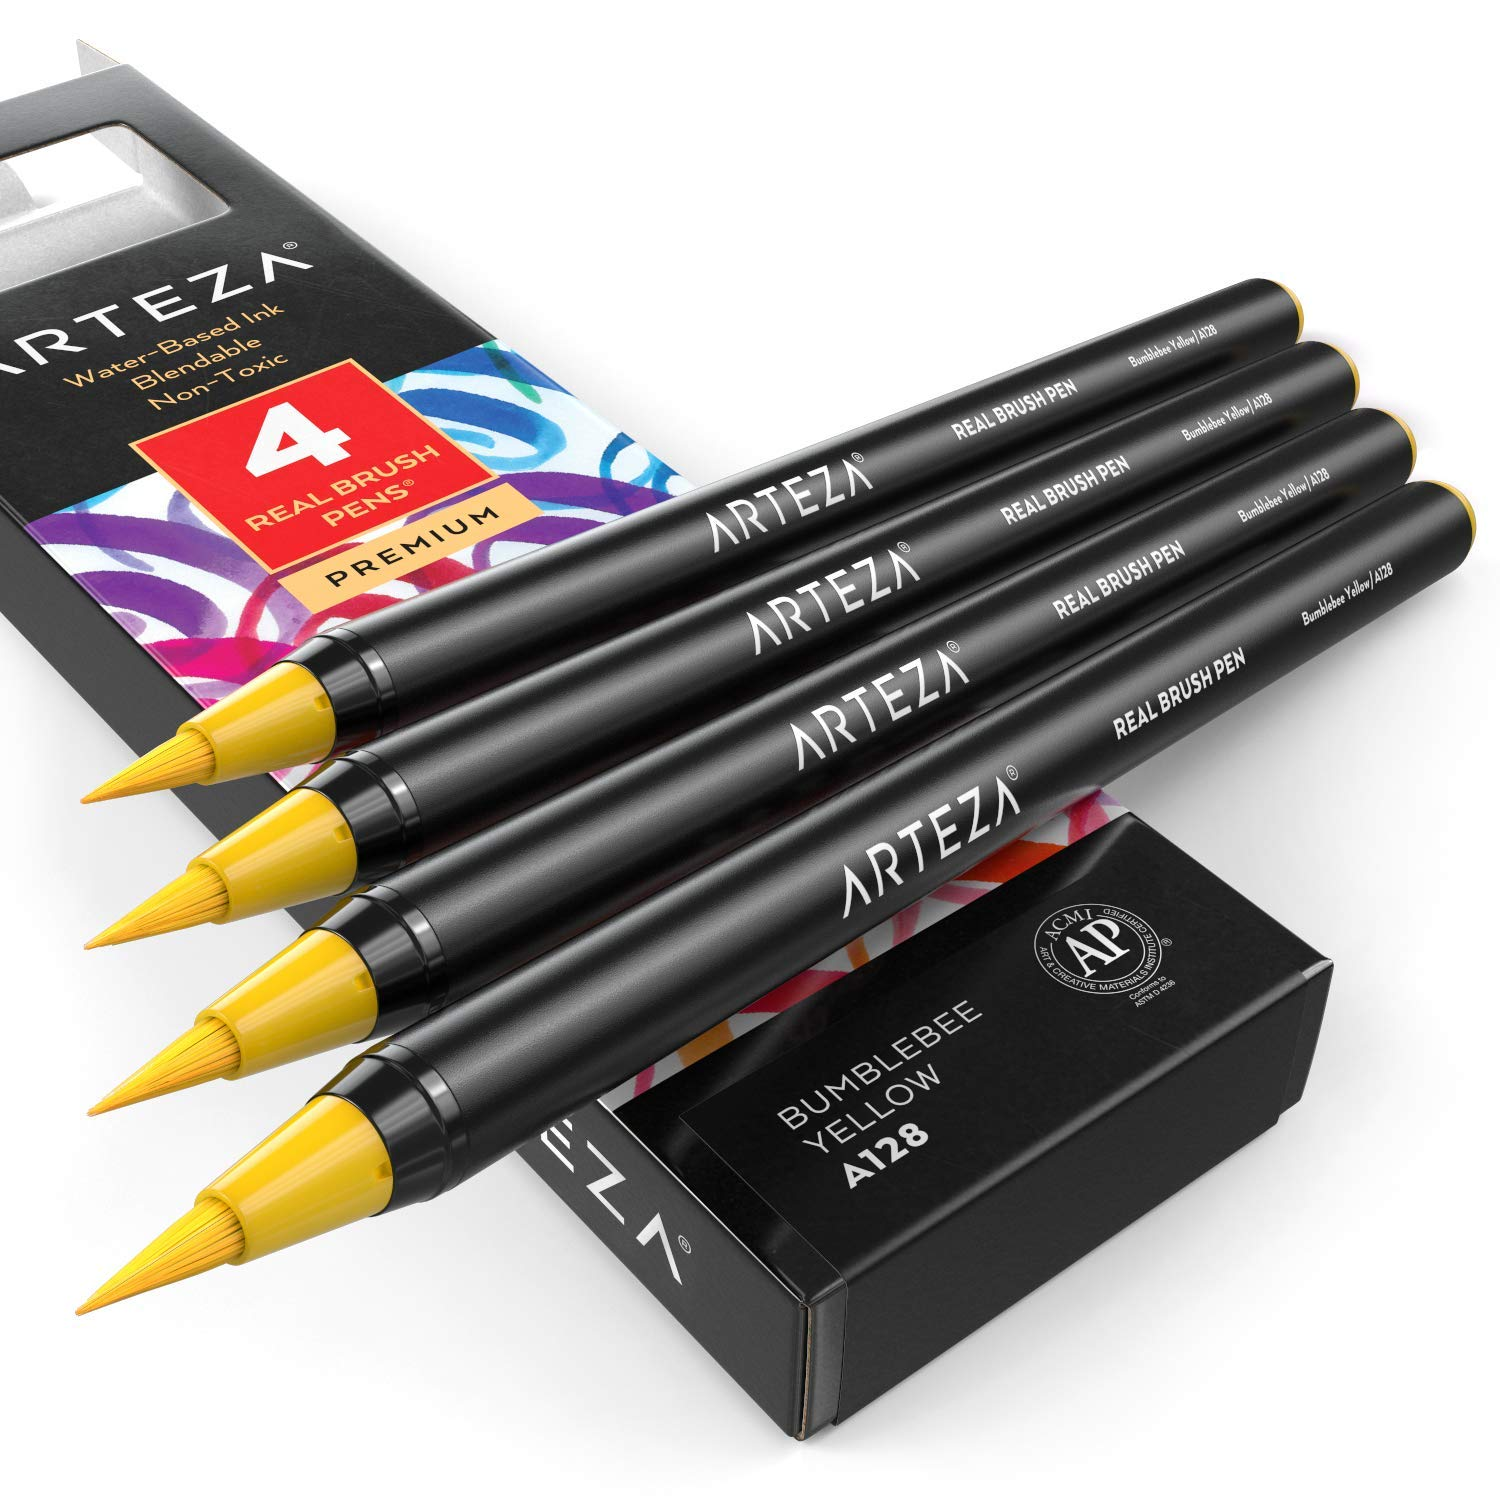 A117 Arctic Blue Arteza Real Brush Pens Pack of 4 Calligraphy and Drawing for Watercolor Painting with Flexible Nylon Brush Tips Paint Markers for Coloring